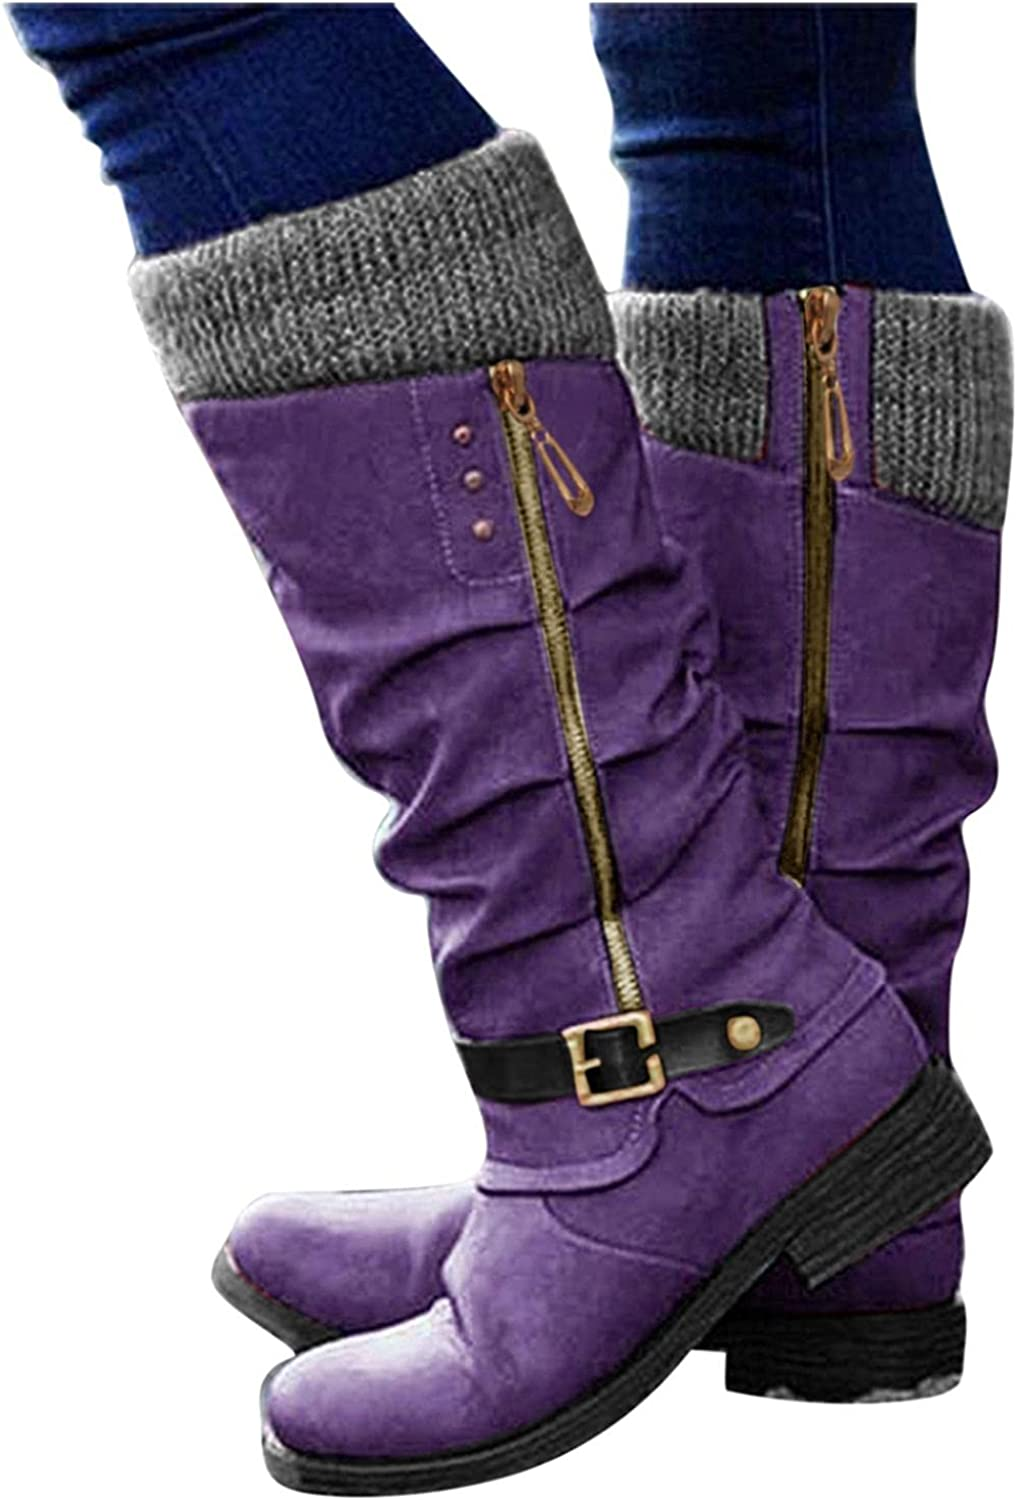 Gibobby Boots for Women Low Heel,Women's Fashion Casual Warm Round Toe Buckle Strap Cowgirl Booties Zipper Comfy Long Tube Boots